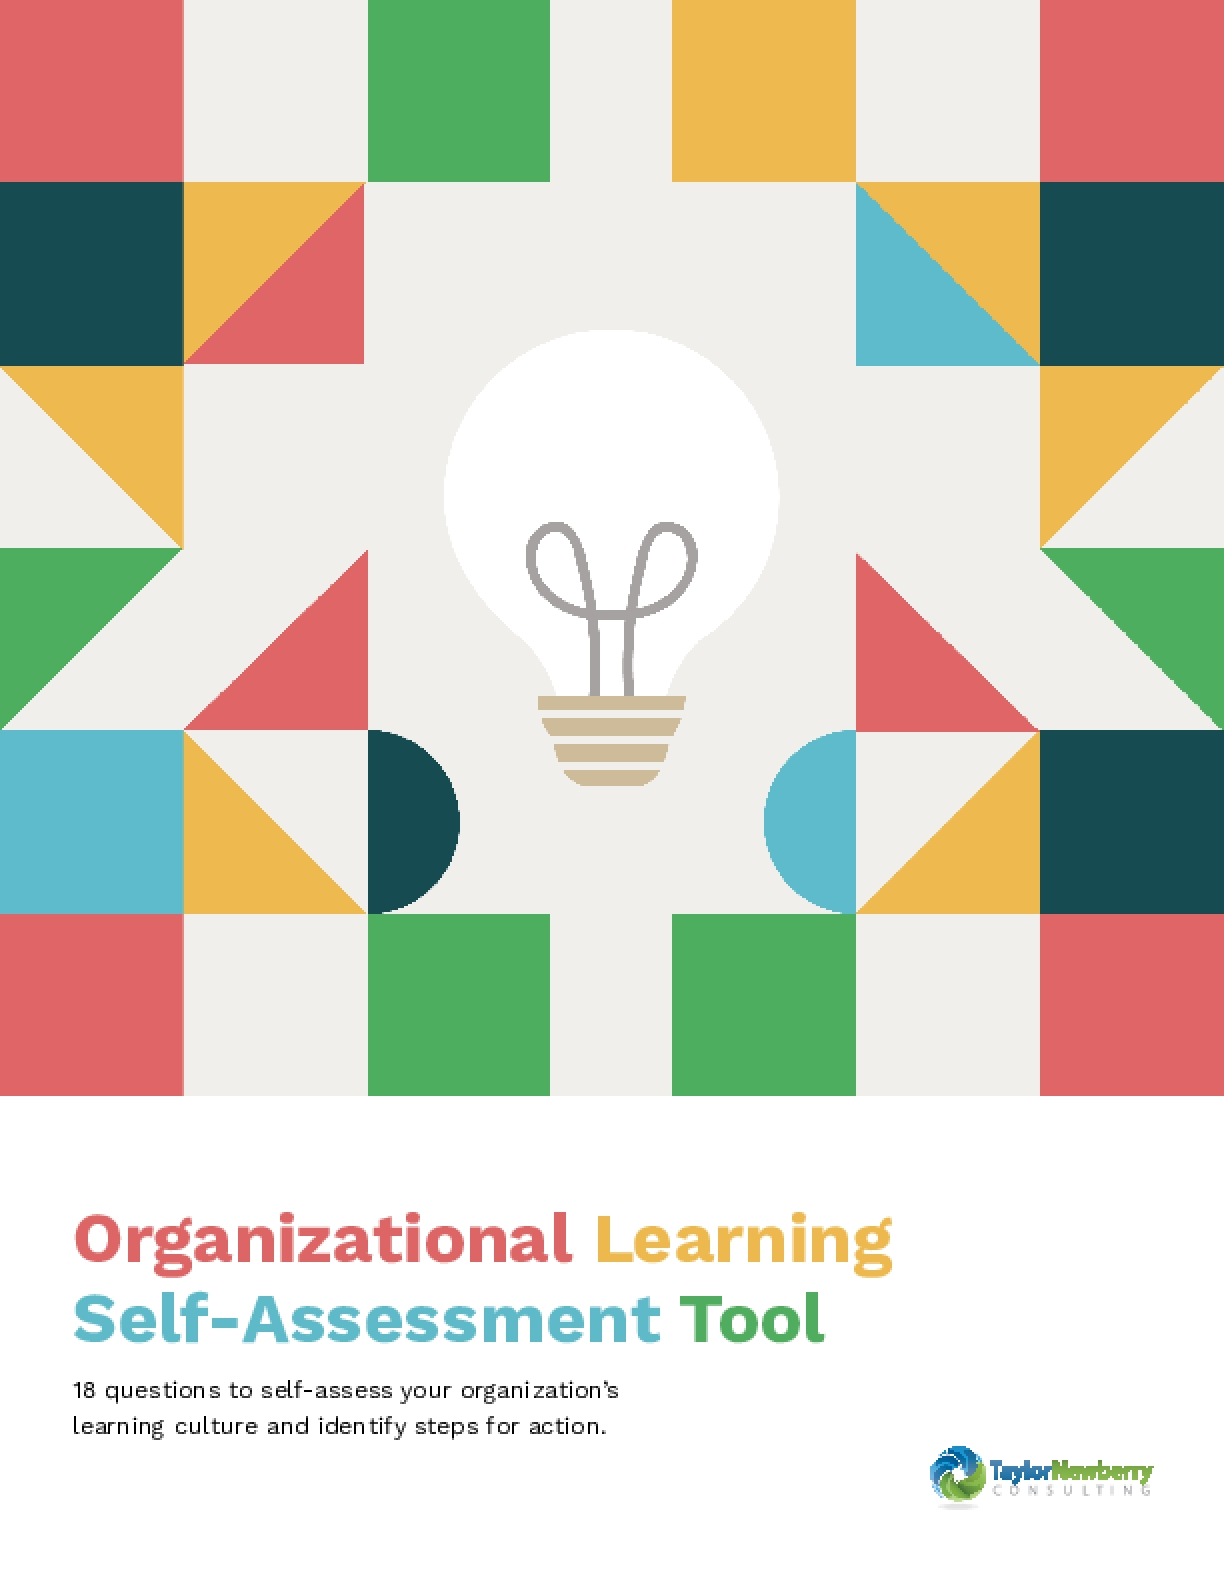 Organizational Learning Self-Assessment Tool